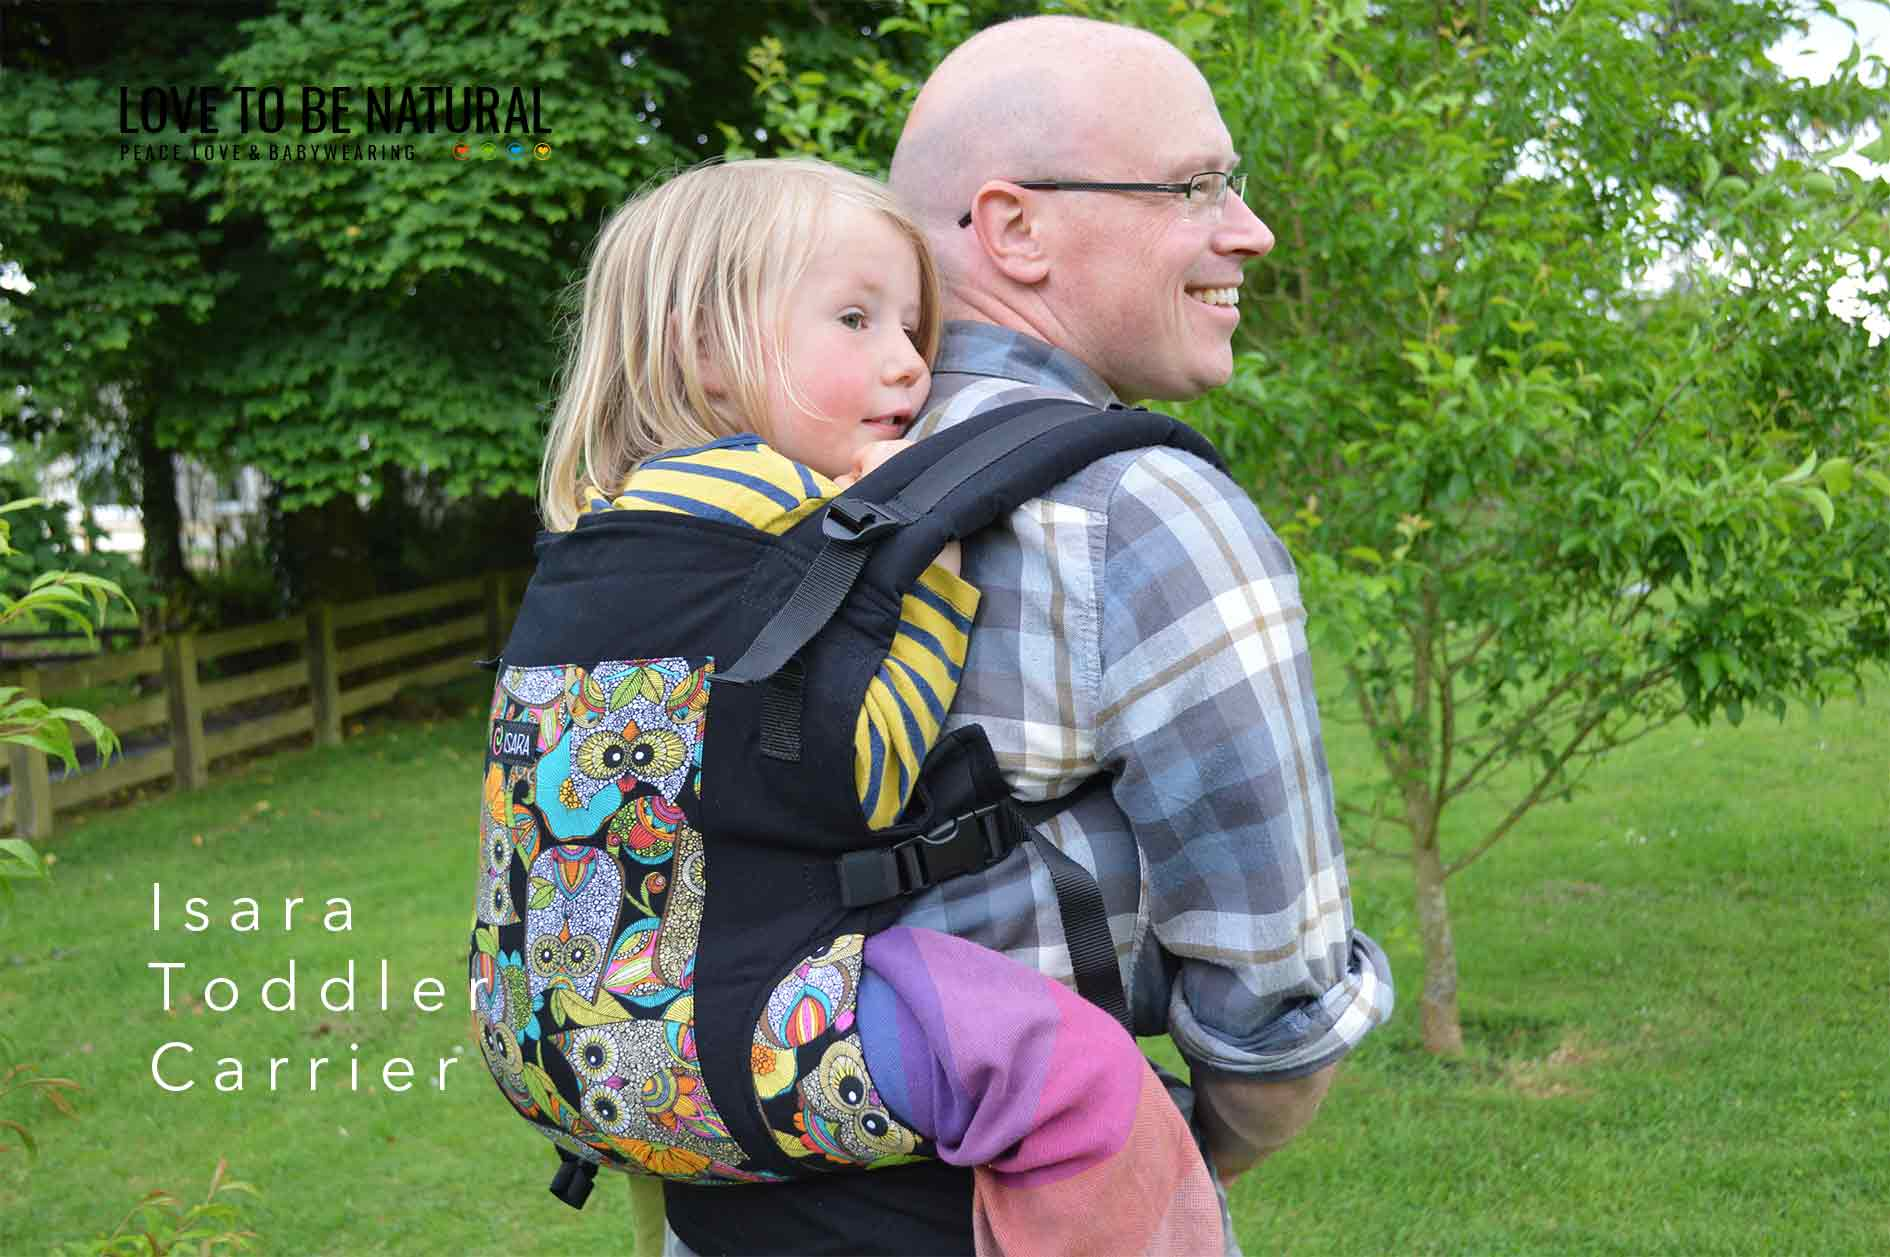 Isara Toddler Carrier